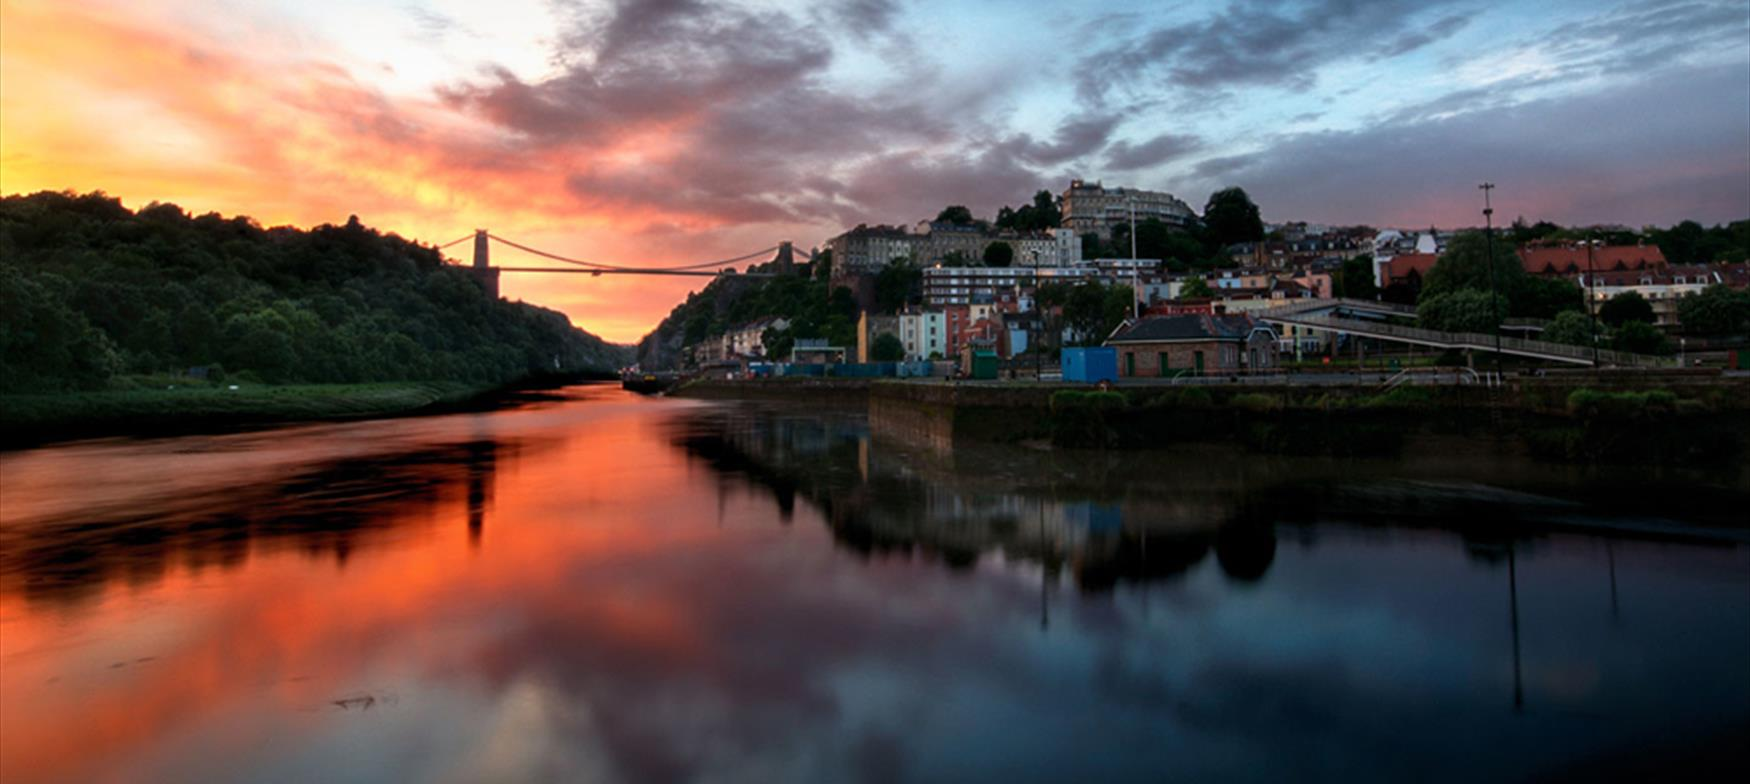 Places to Stay in Bristol